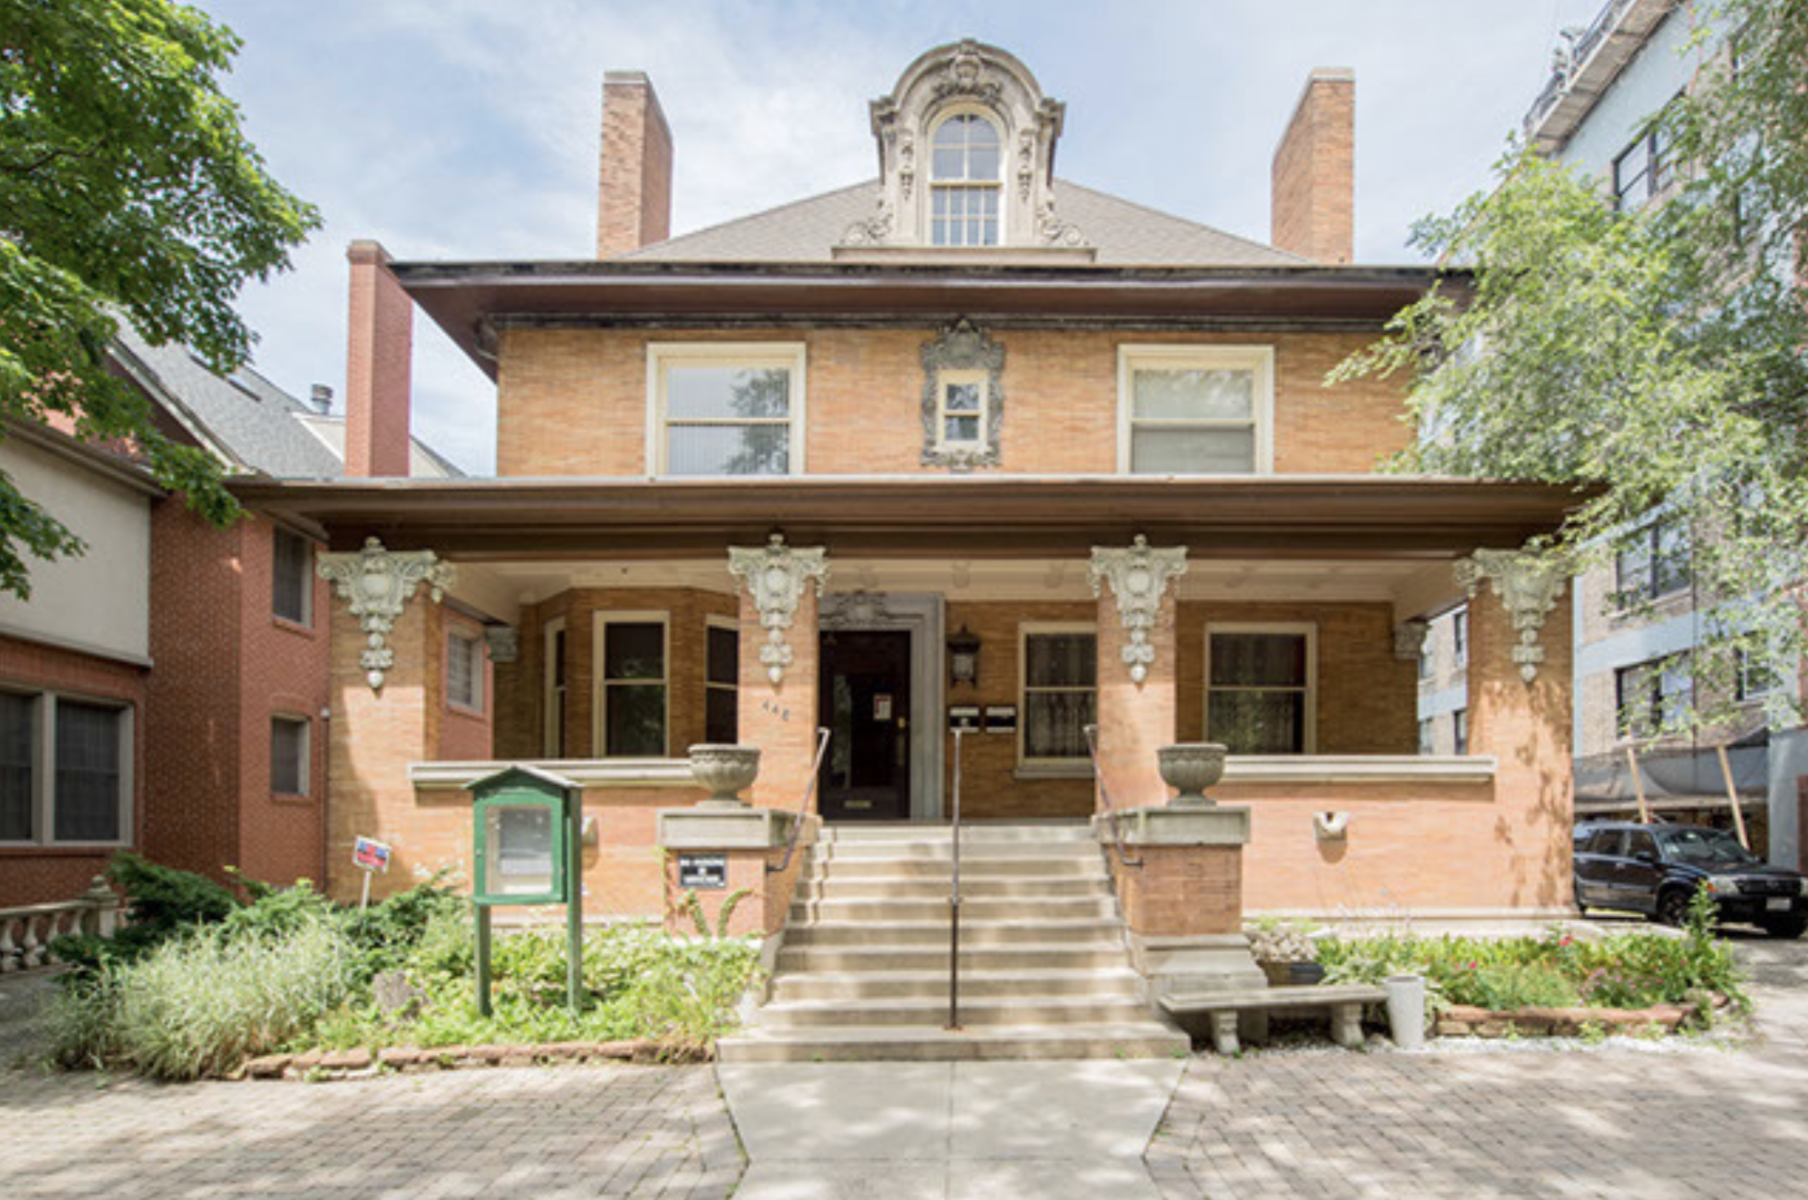 Lakeview's landmarked Daniel O. Hill House is back on the market as a $2.3M fixer-upper